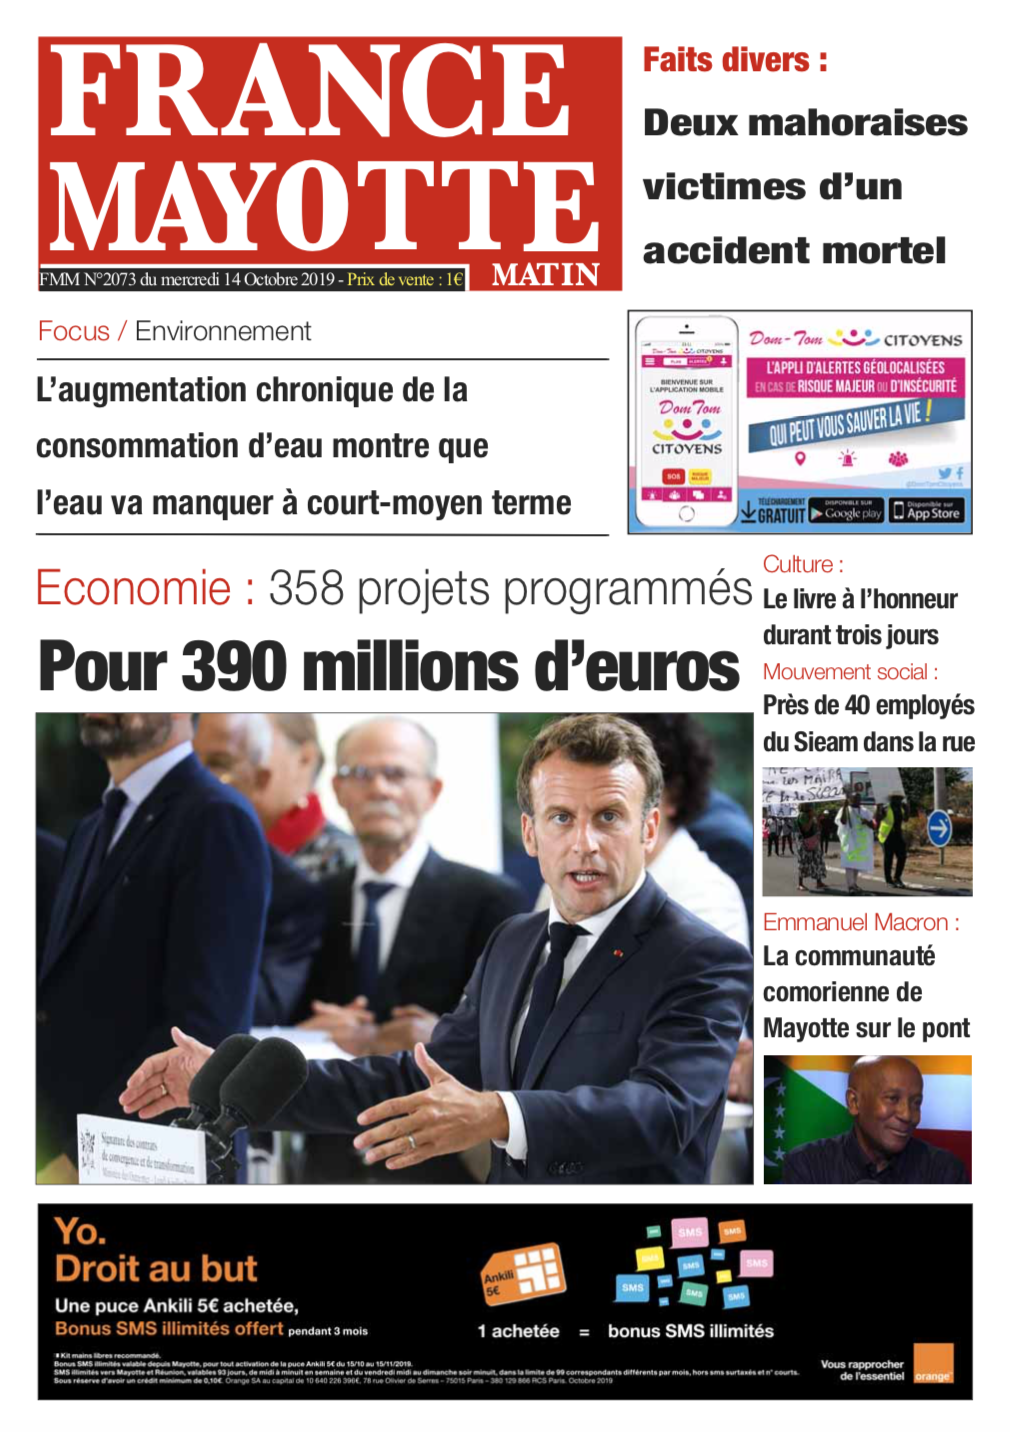 France Mayotte Mercredi 16 octobre 2019